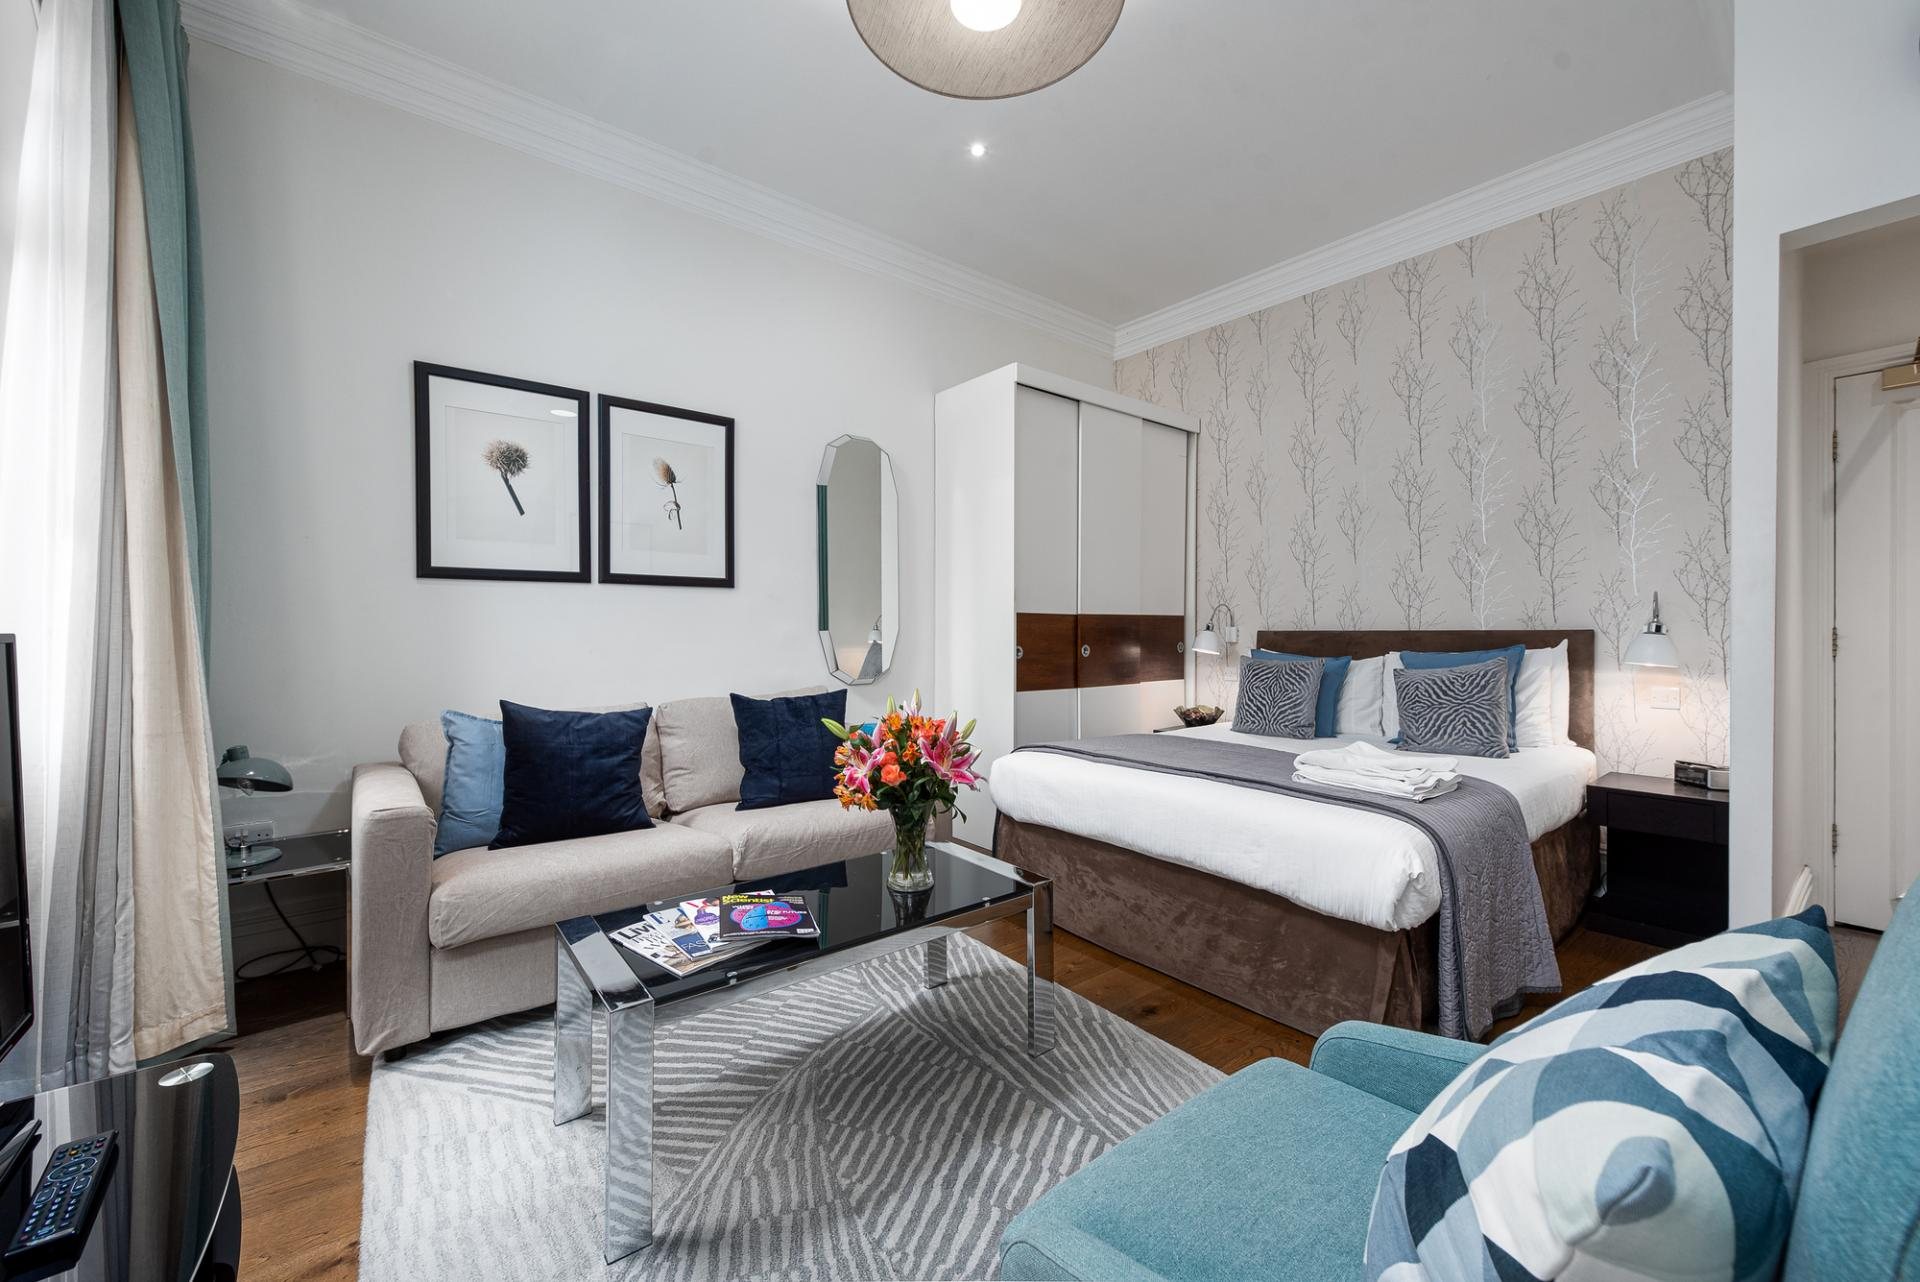 Studio at Draycott Place Serviced Apartments, Chelsea, London